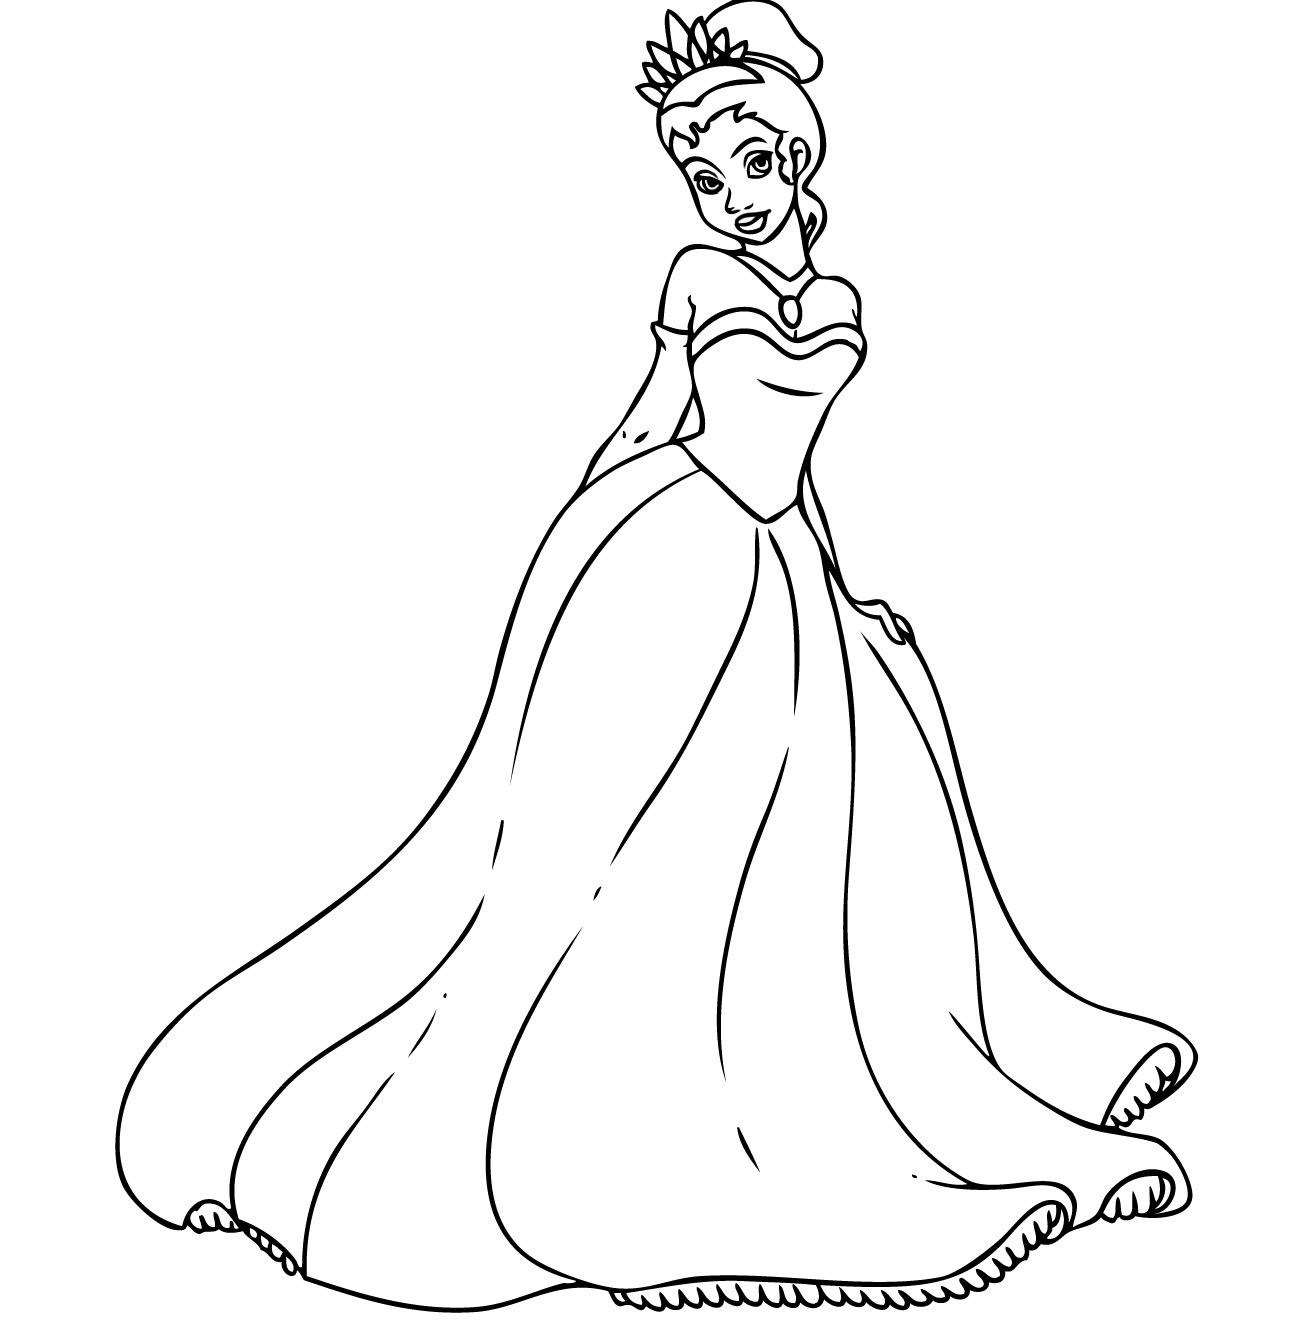 photograph about Printable Princess Picture named Cost-free Printable Princess Tiana Coloring Internet pages For Children